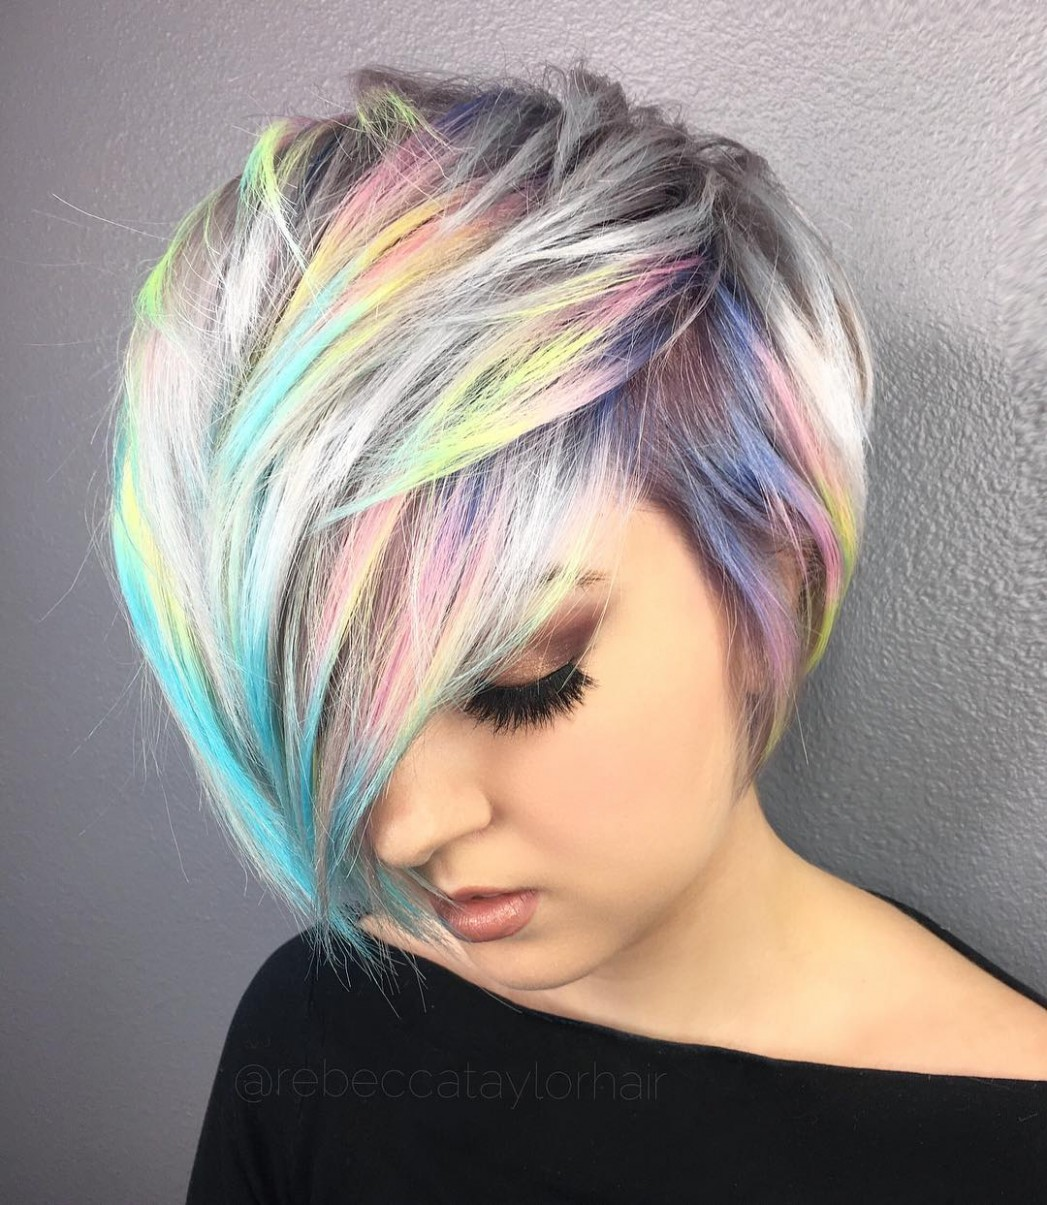 11 Stylish Pixie Haircuts - Short Hairstyle Ideas for Women Ready